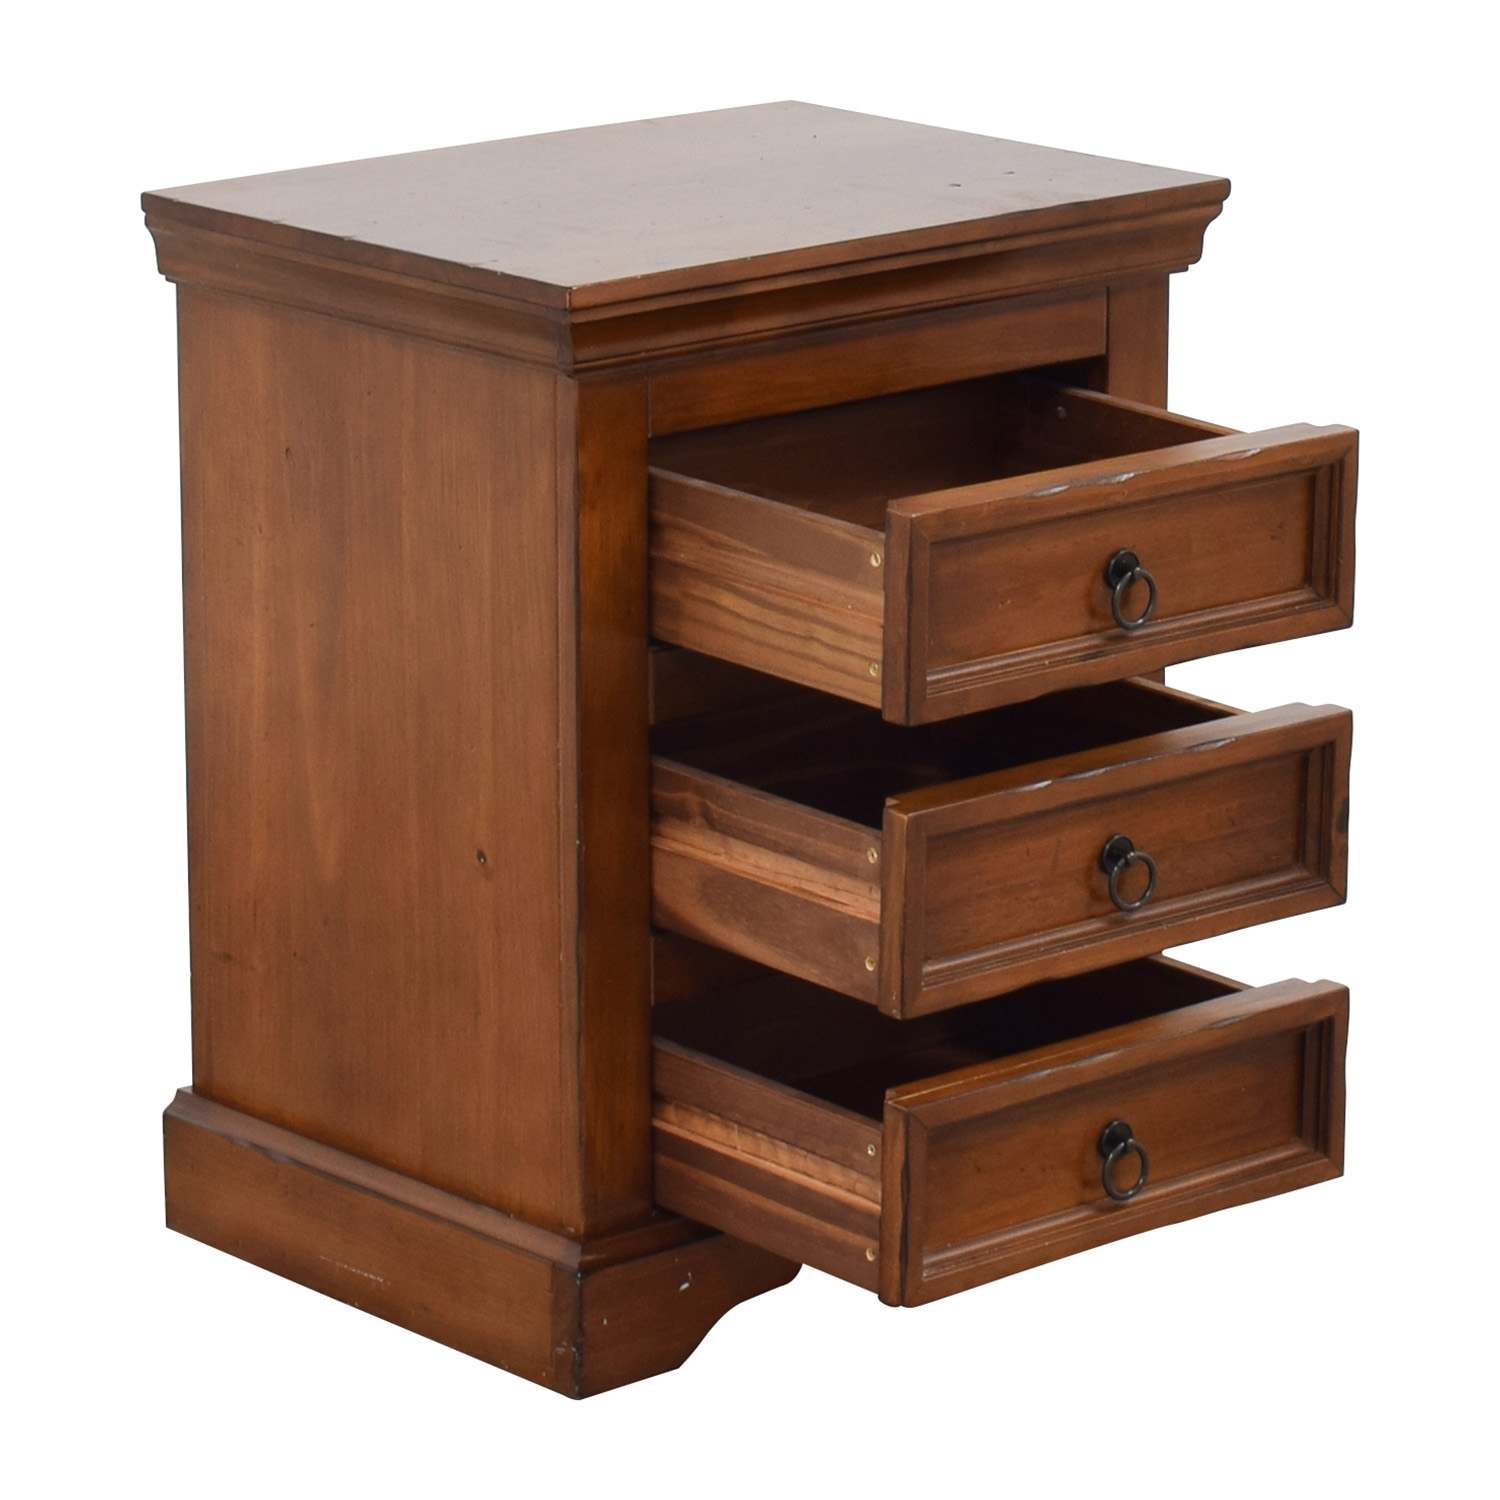 Pier 1 Imports Three-Drawer Nightstand Pier 1 Imports